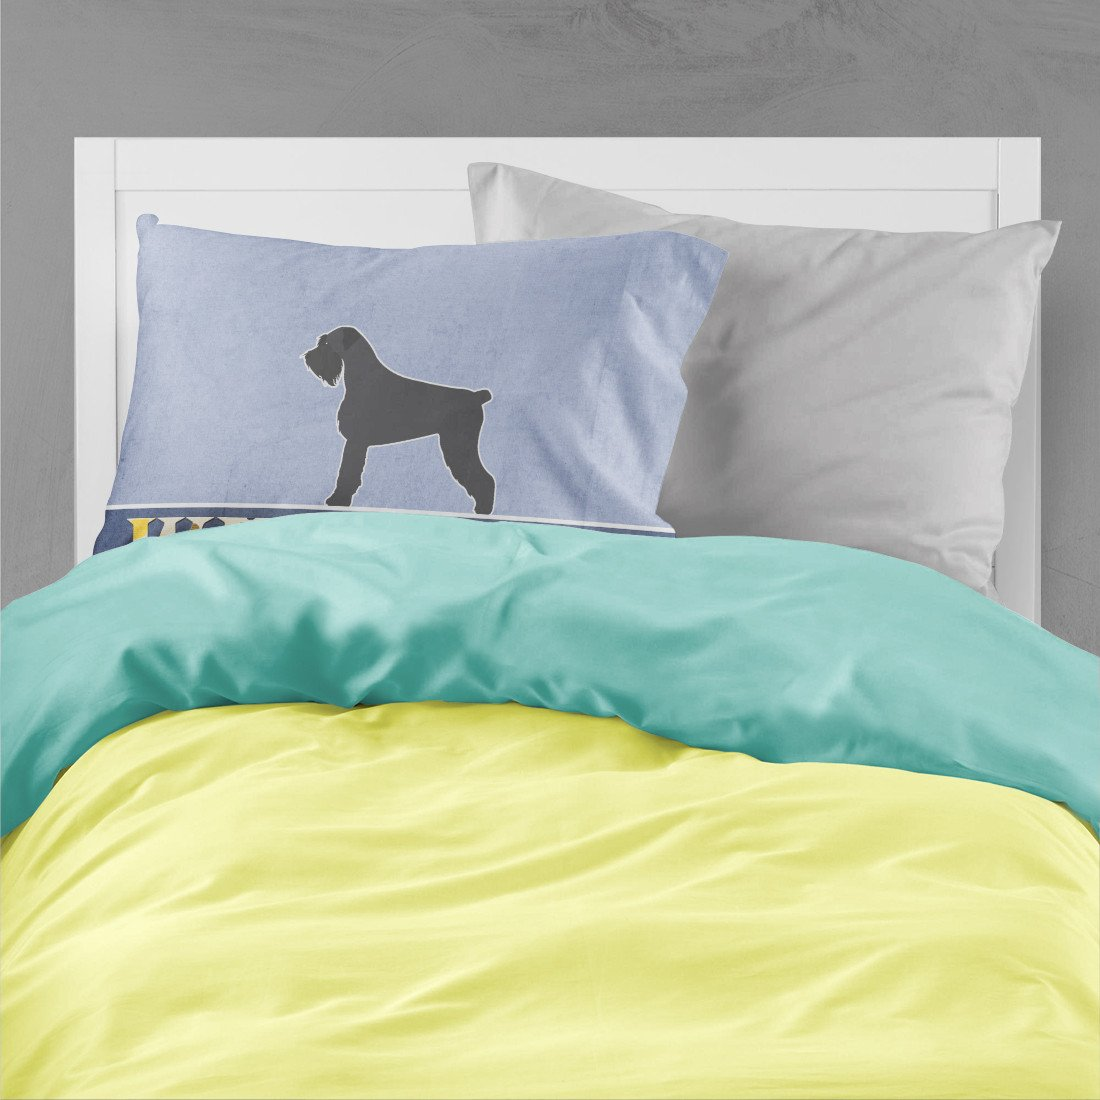 Giant Schnauzer Welcome Fabric Standard Pillowcase BB5577PILLOWCASE by Caroline's Treasures